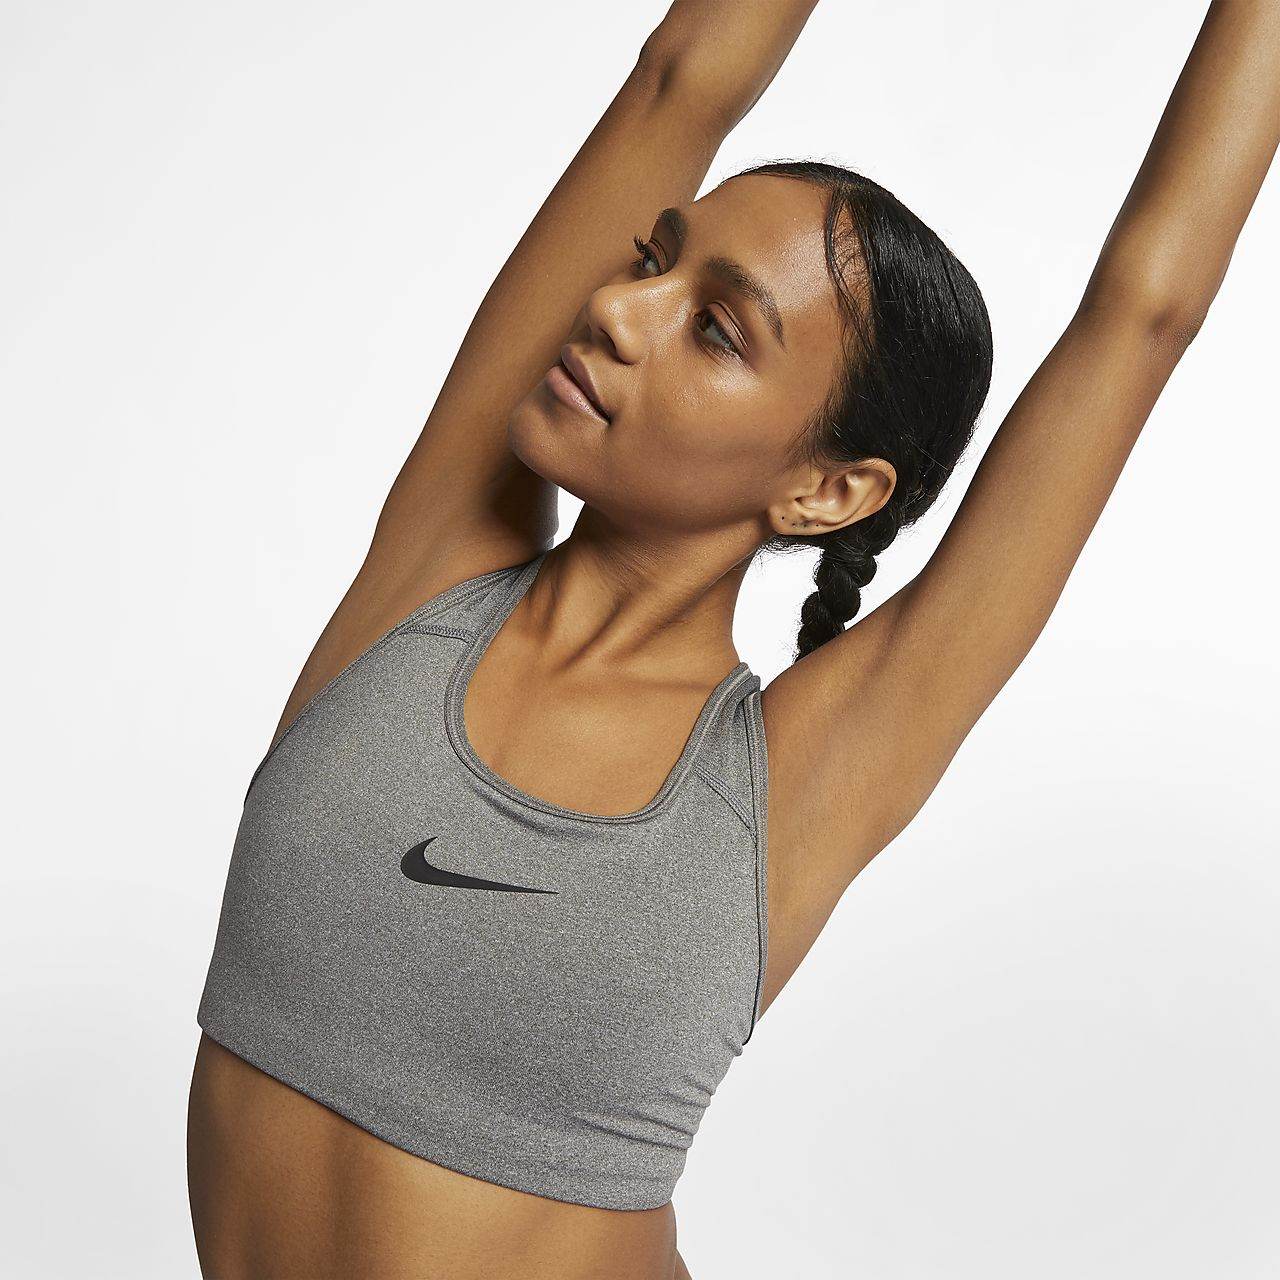 ... Nike Classic Swoosh Women's Medium Support Sports Bra